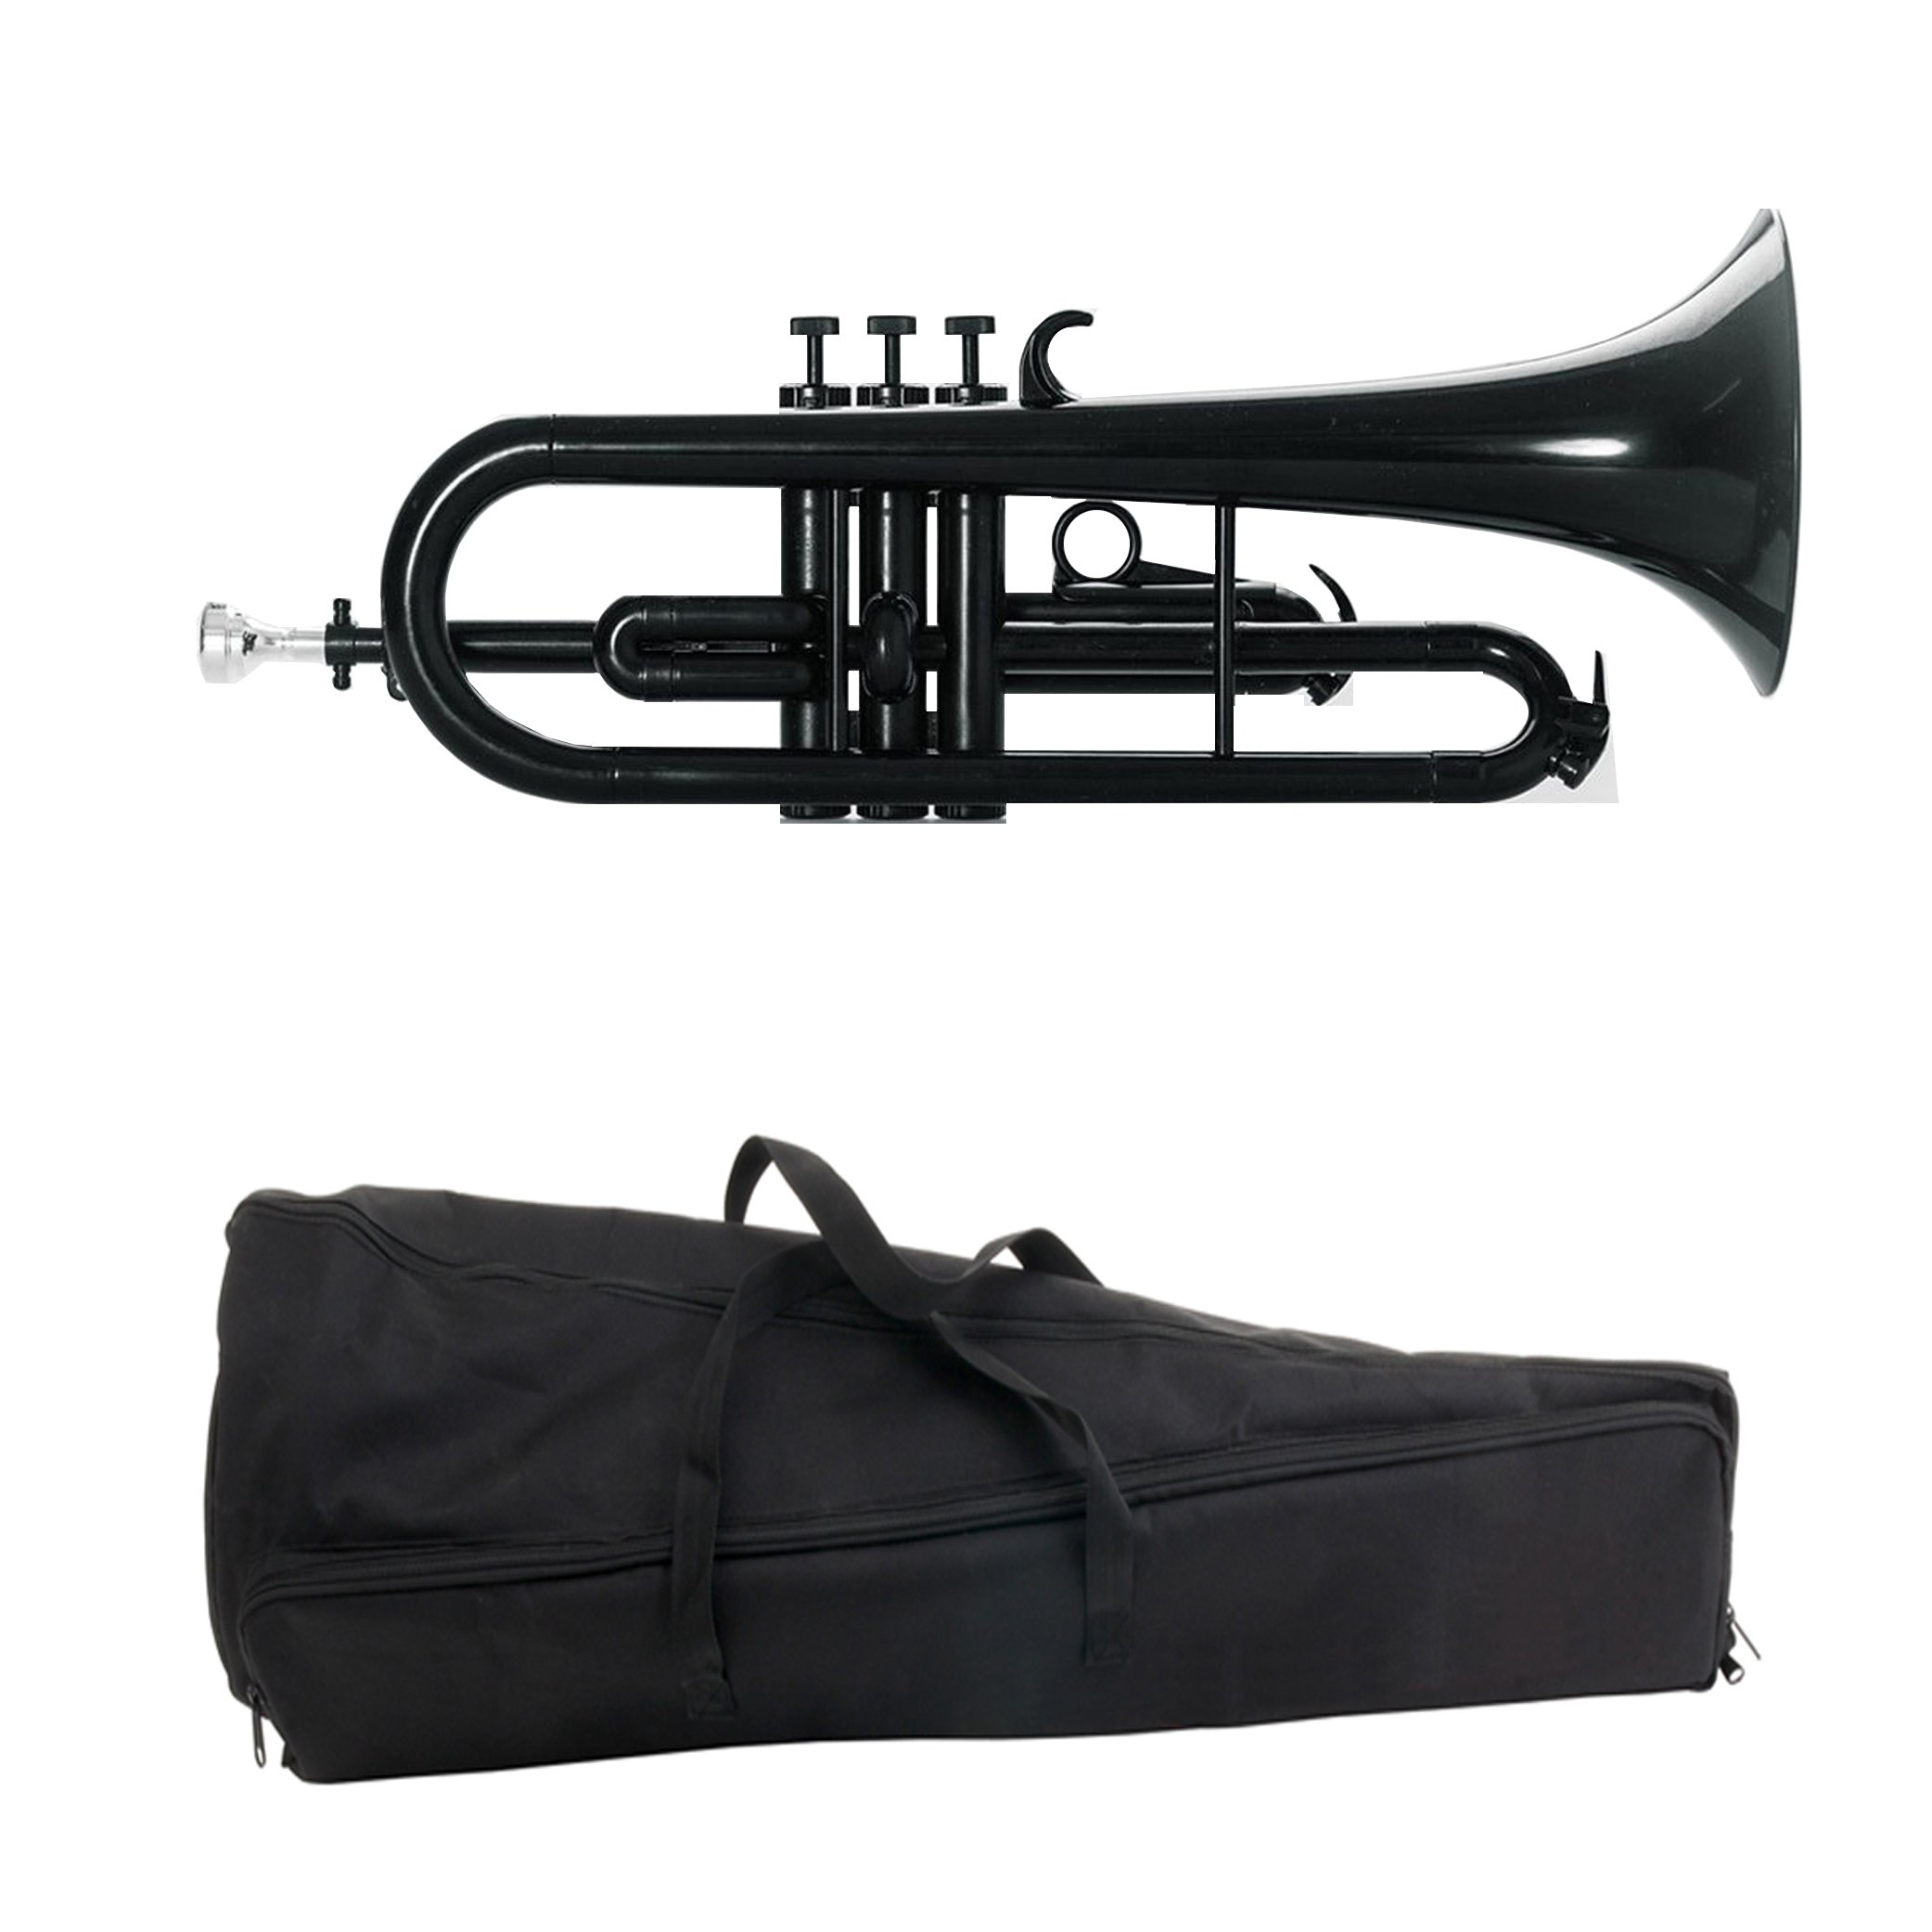 Estella PFG100BK Bb Plastic Flugelhorn, Black by Estella (Image #1)